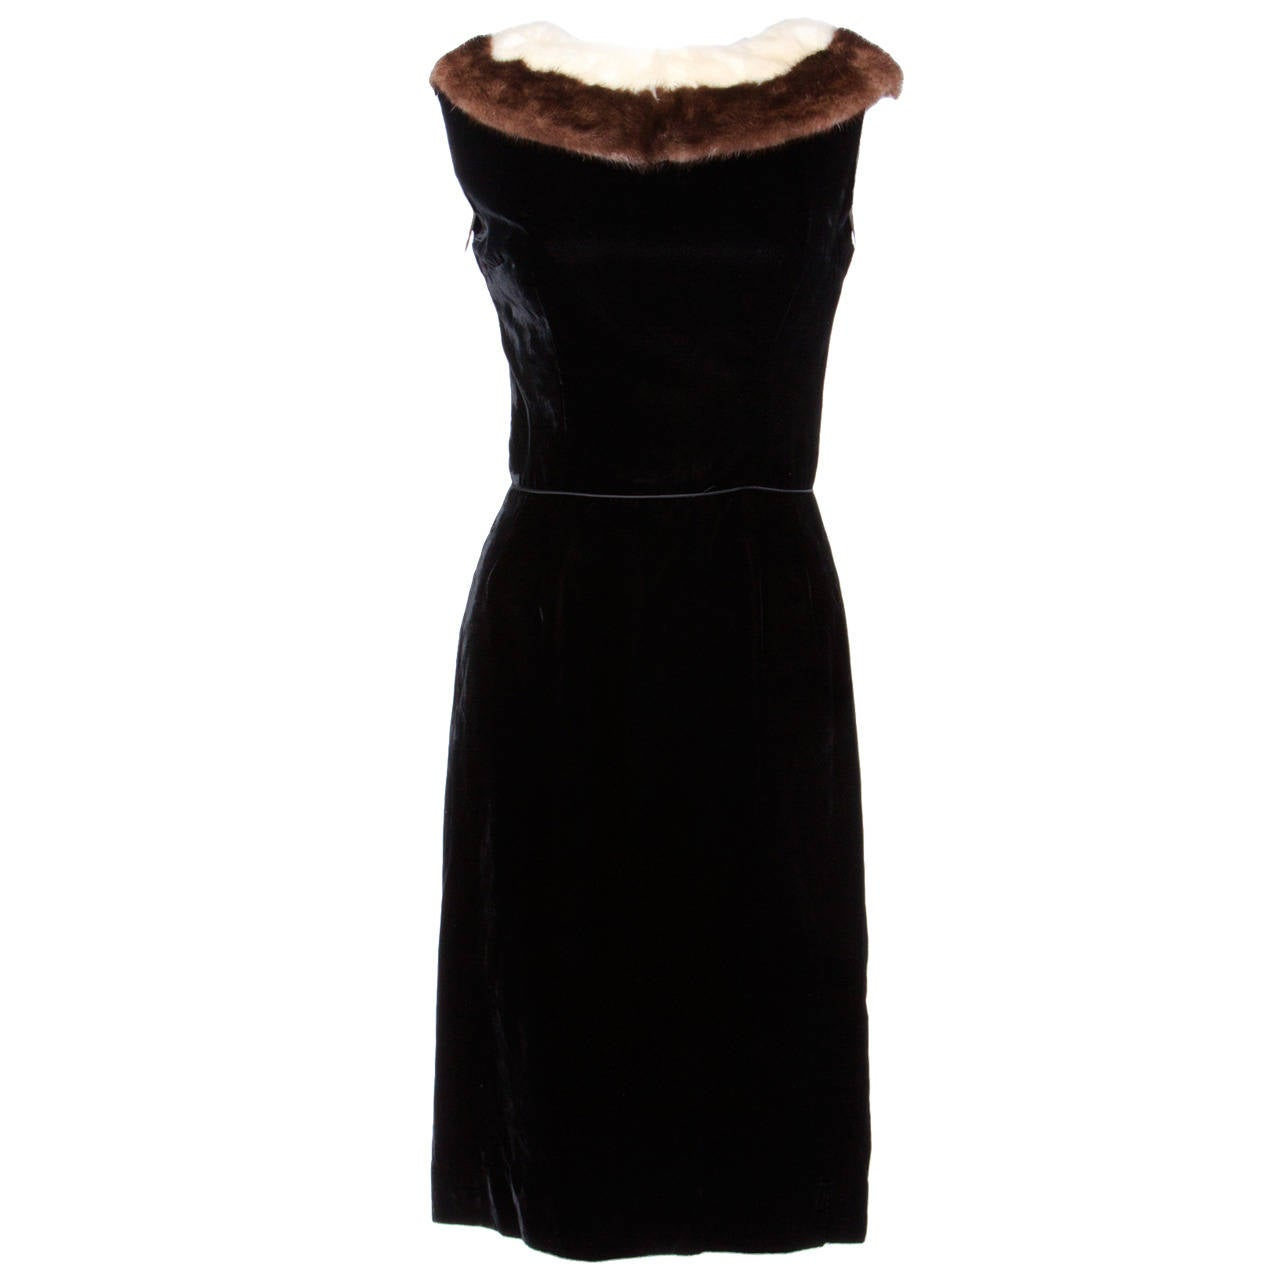 Vintage 1960s 60s Black Velvet Sheath Dress with Mink Fur Trim 1